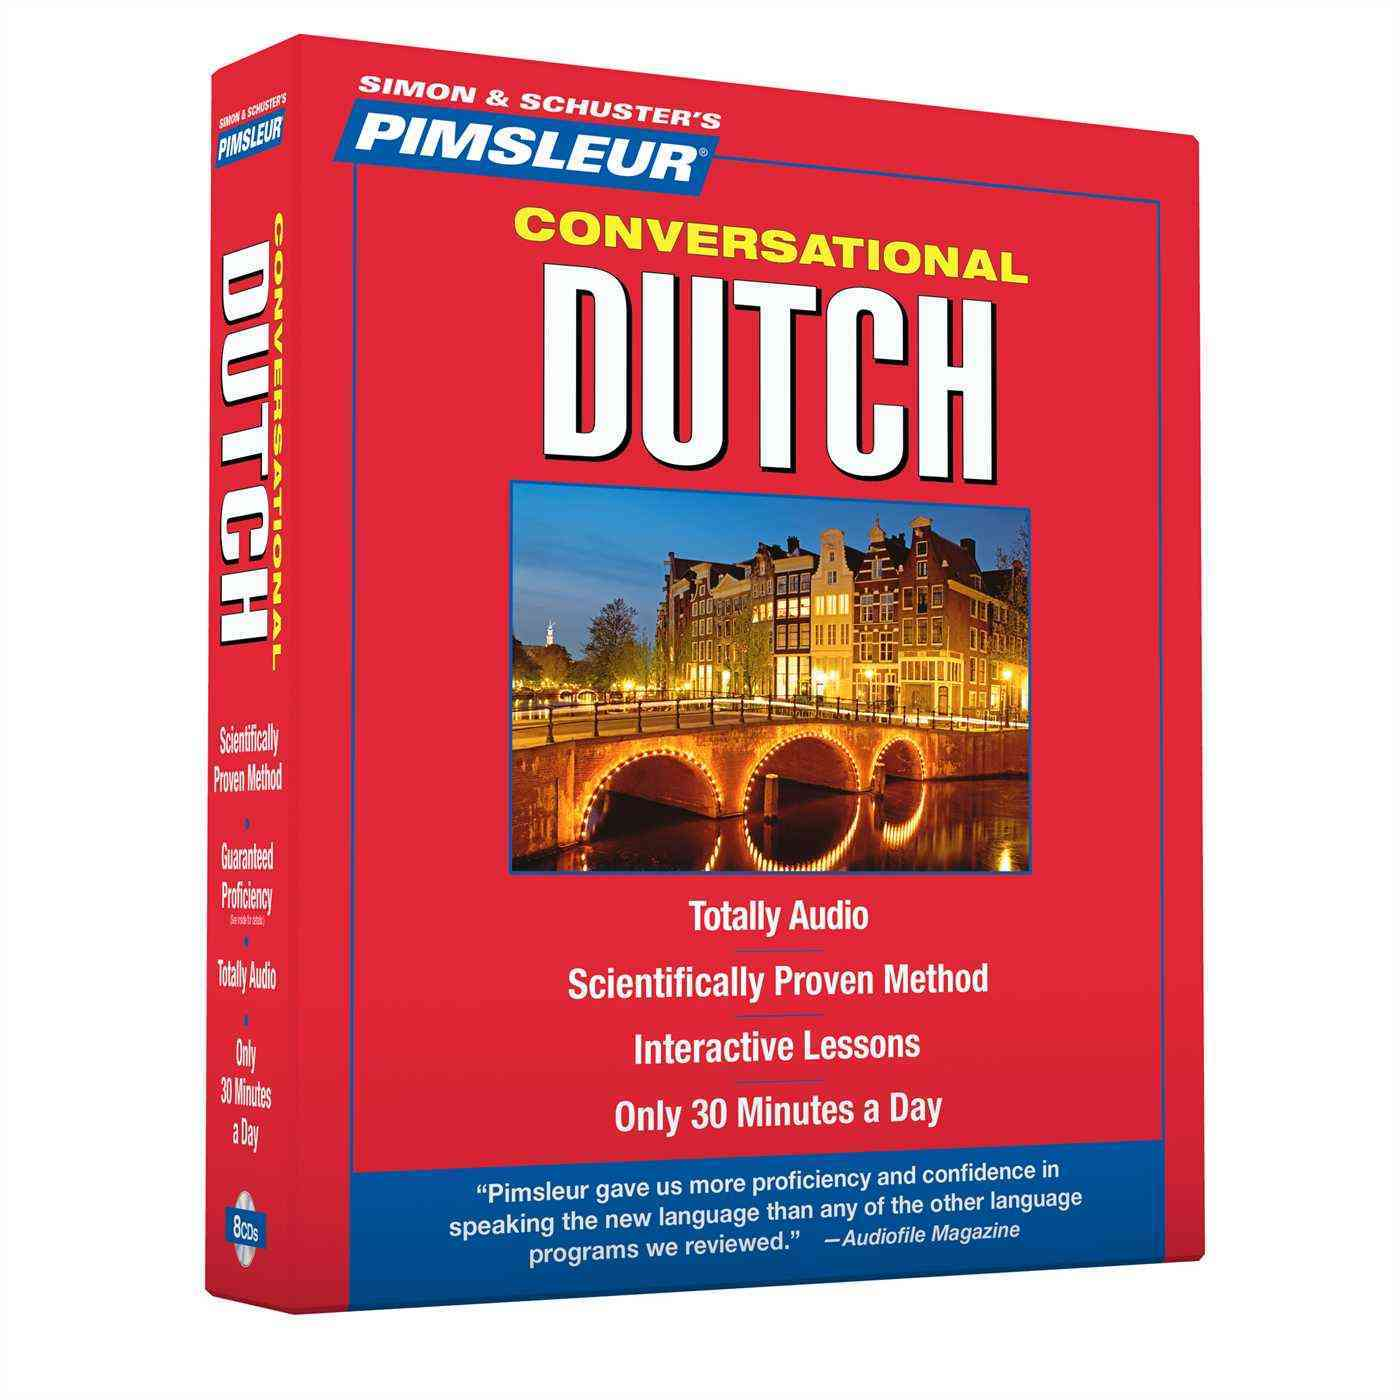 [CD] Pimsleur Conversational Dutch By Pimsleur Language Programs